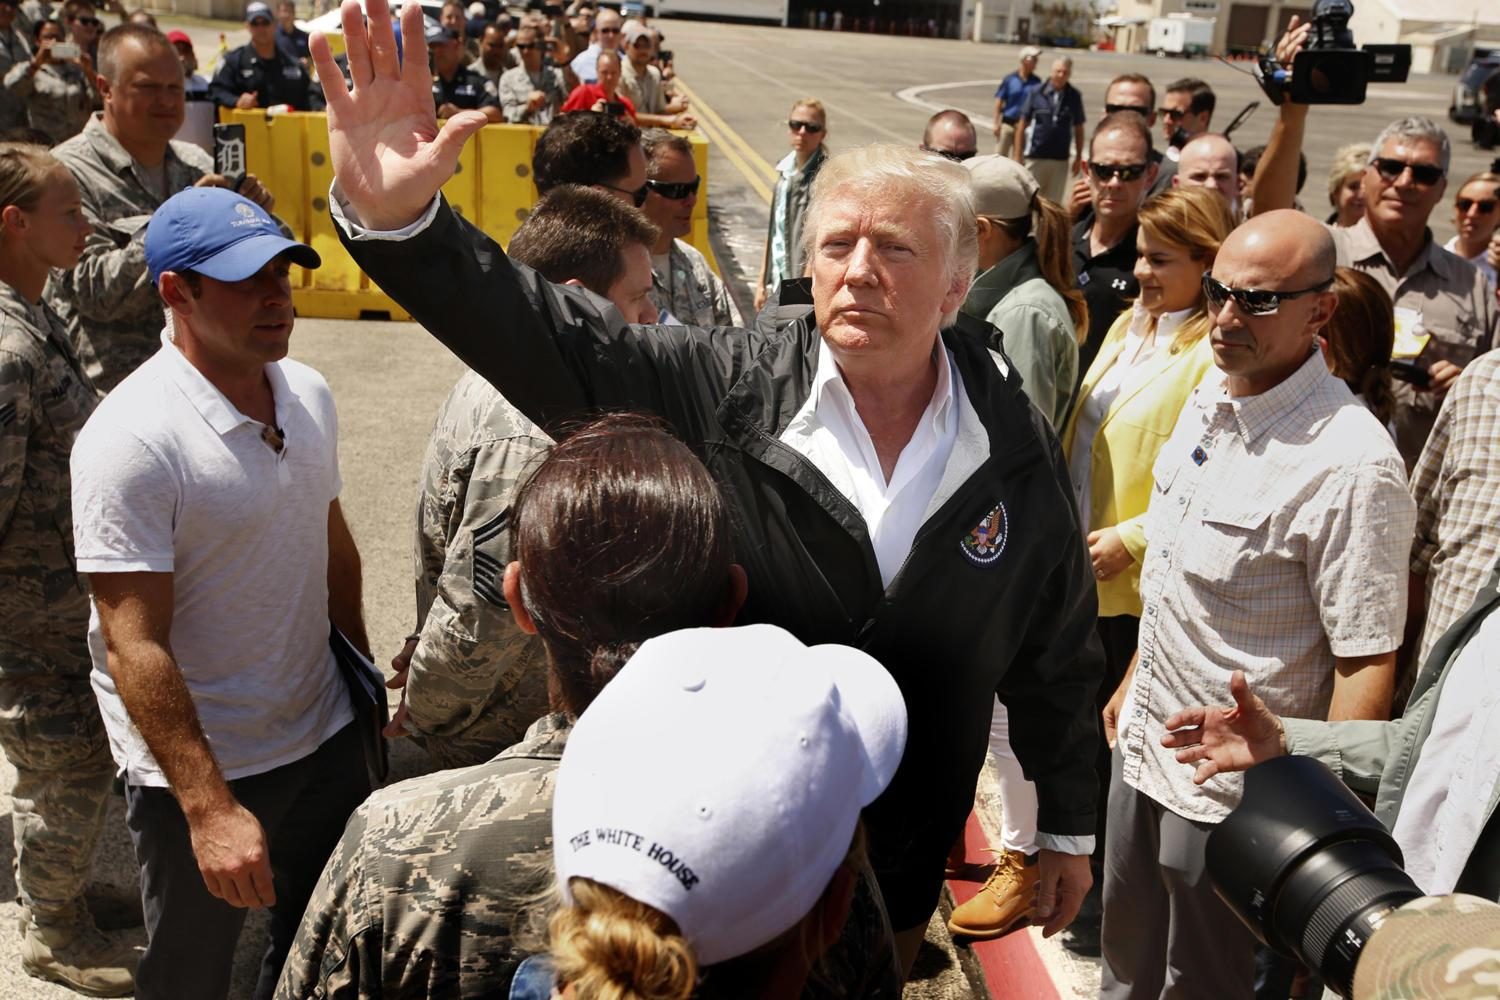 President Donald Trump and first lady Melania Trump arrive at Muniz Air National Guard Base in Carolina, Puerto Rico, on Oct. 3. (Carolyn Cole/Los Angeles Times/TNS)